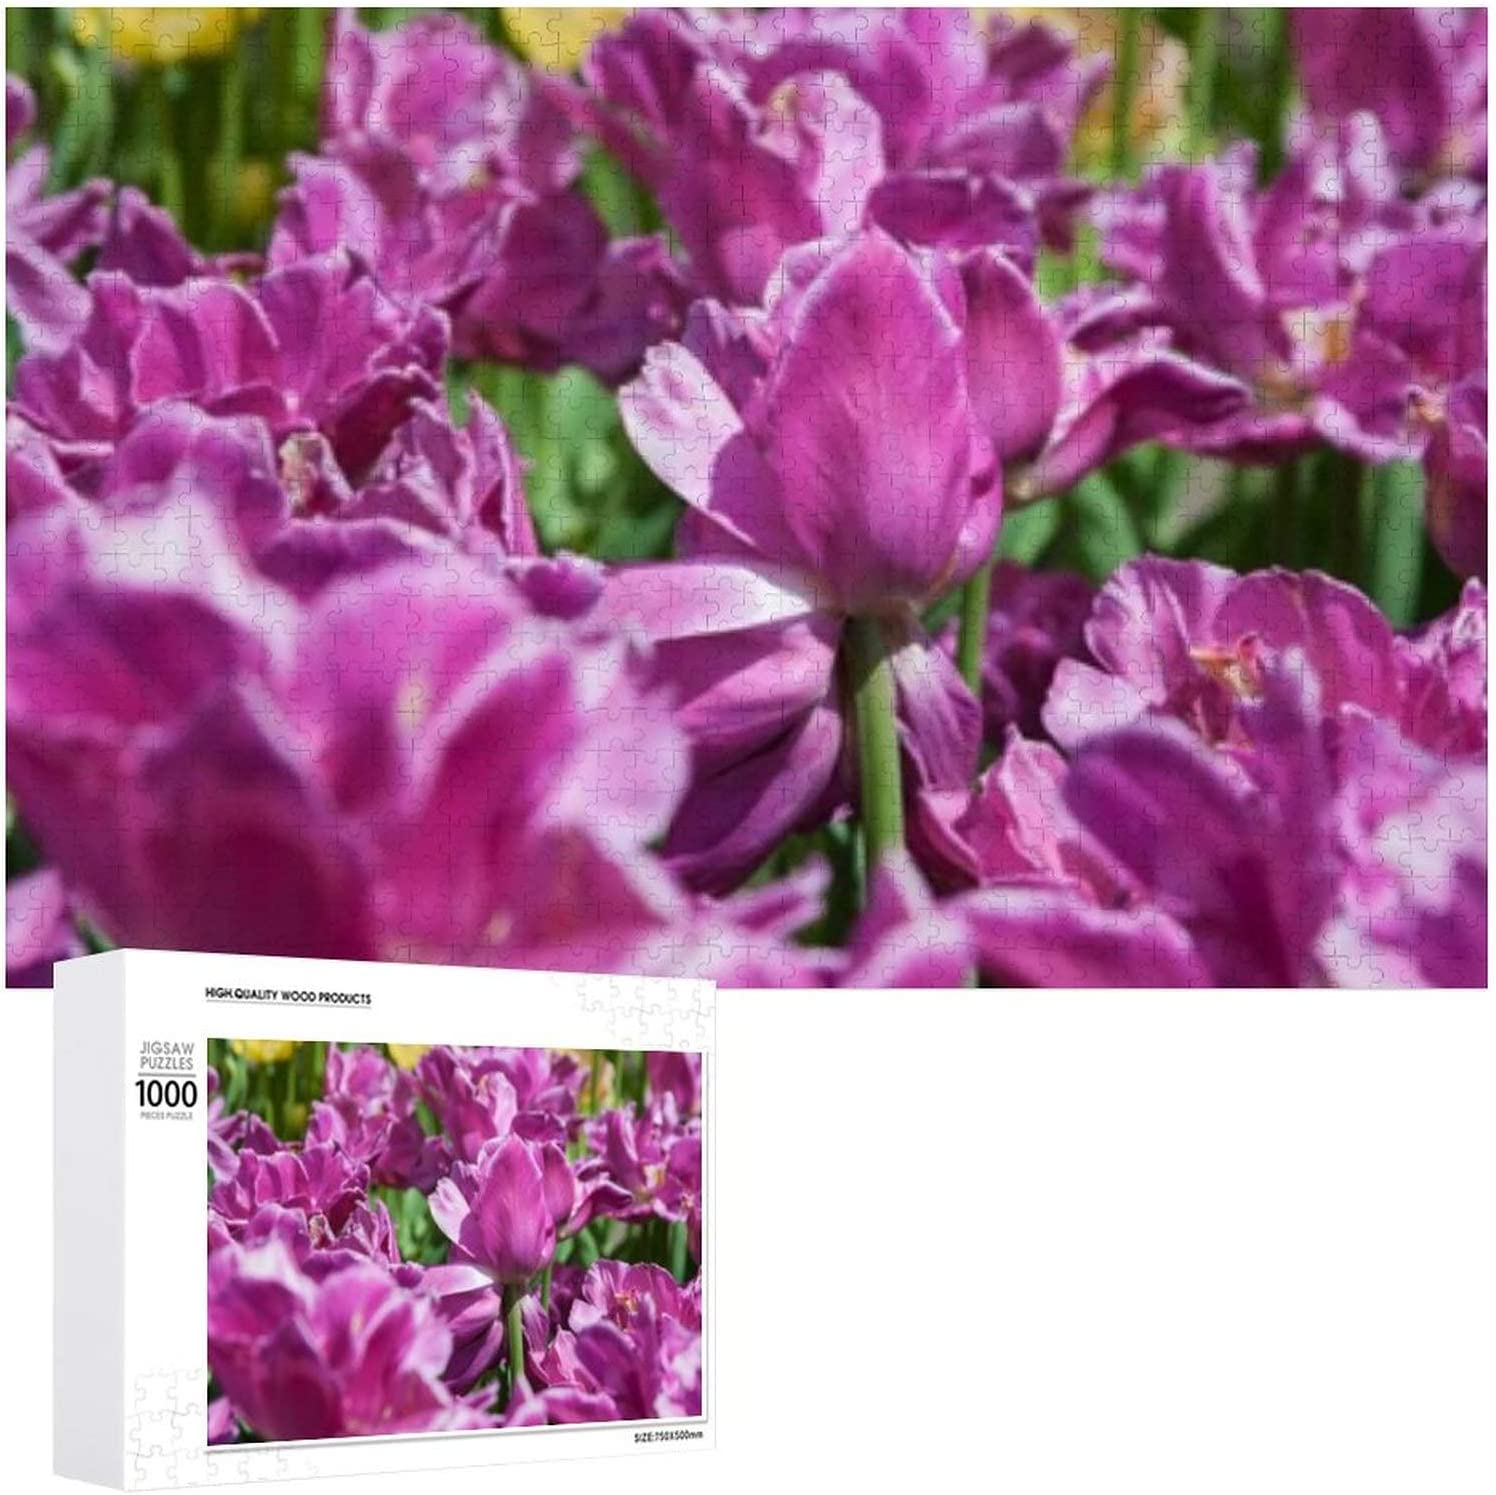 Blooming Purple Brand new Tulips trend rank - 1000 Adults for Ki Puzzles Jigsaw